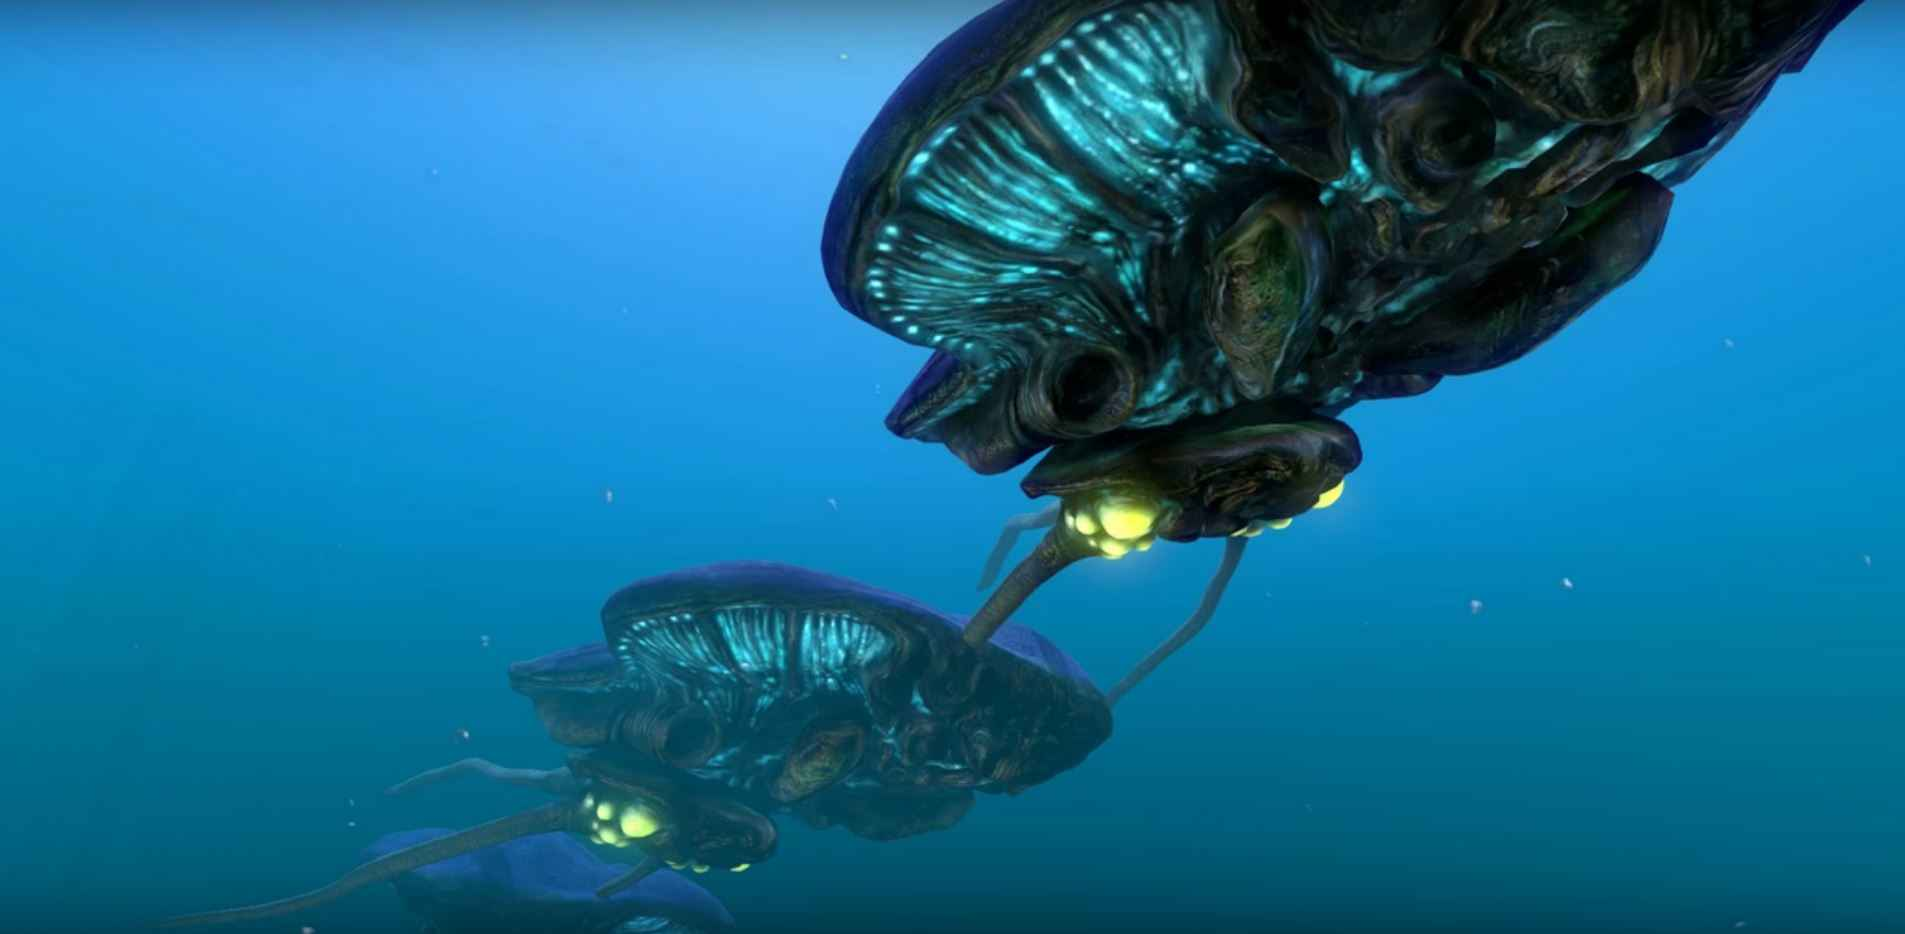 Subnautica All Leviathans - Reefback